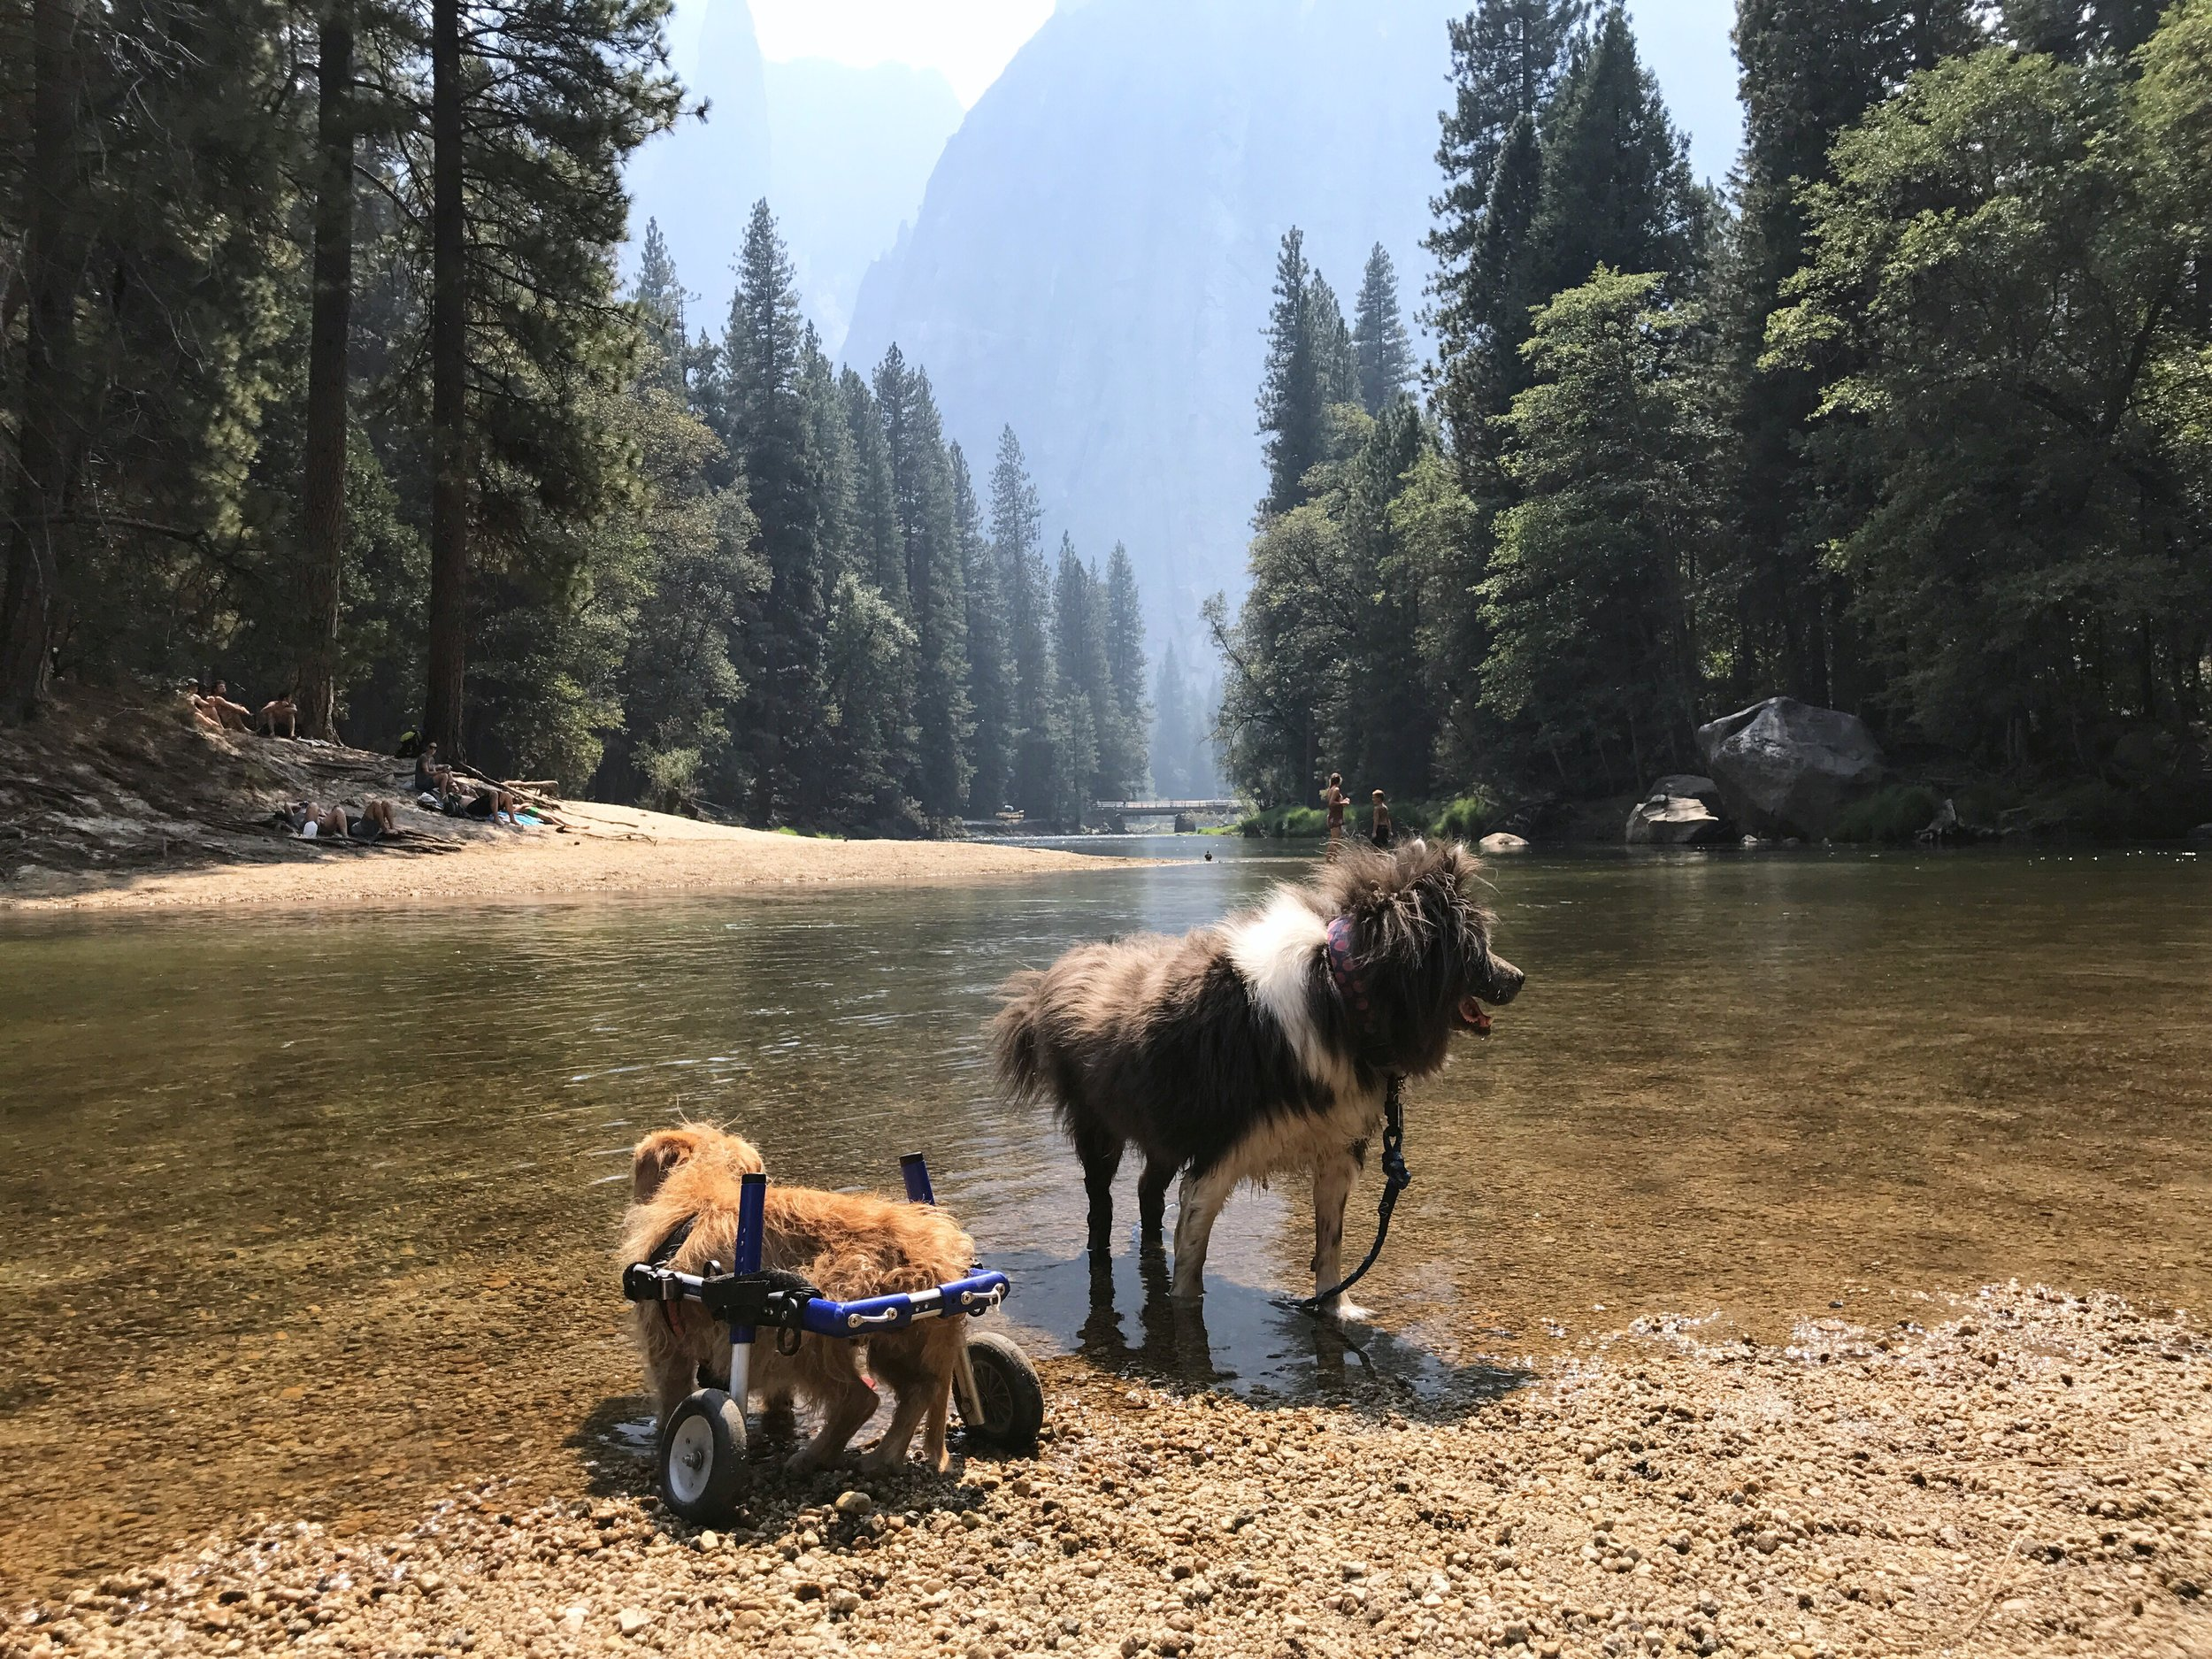 Charlie and Ziggy exploring just outside of Yosemite.